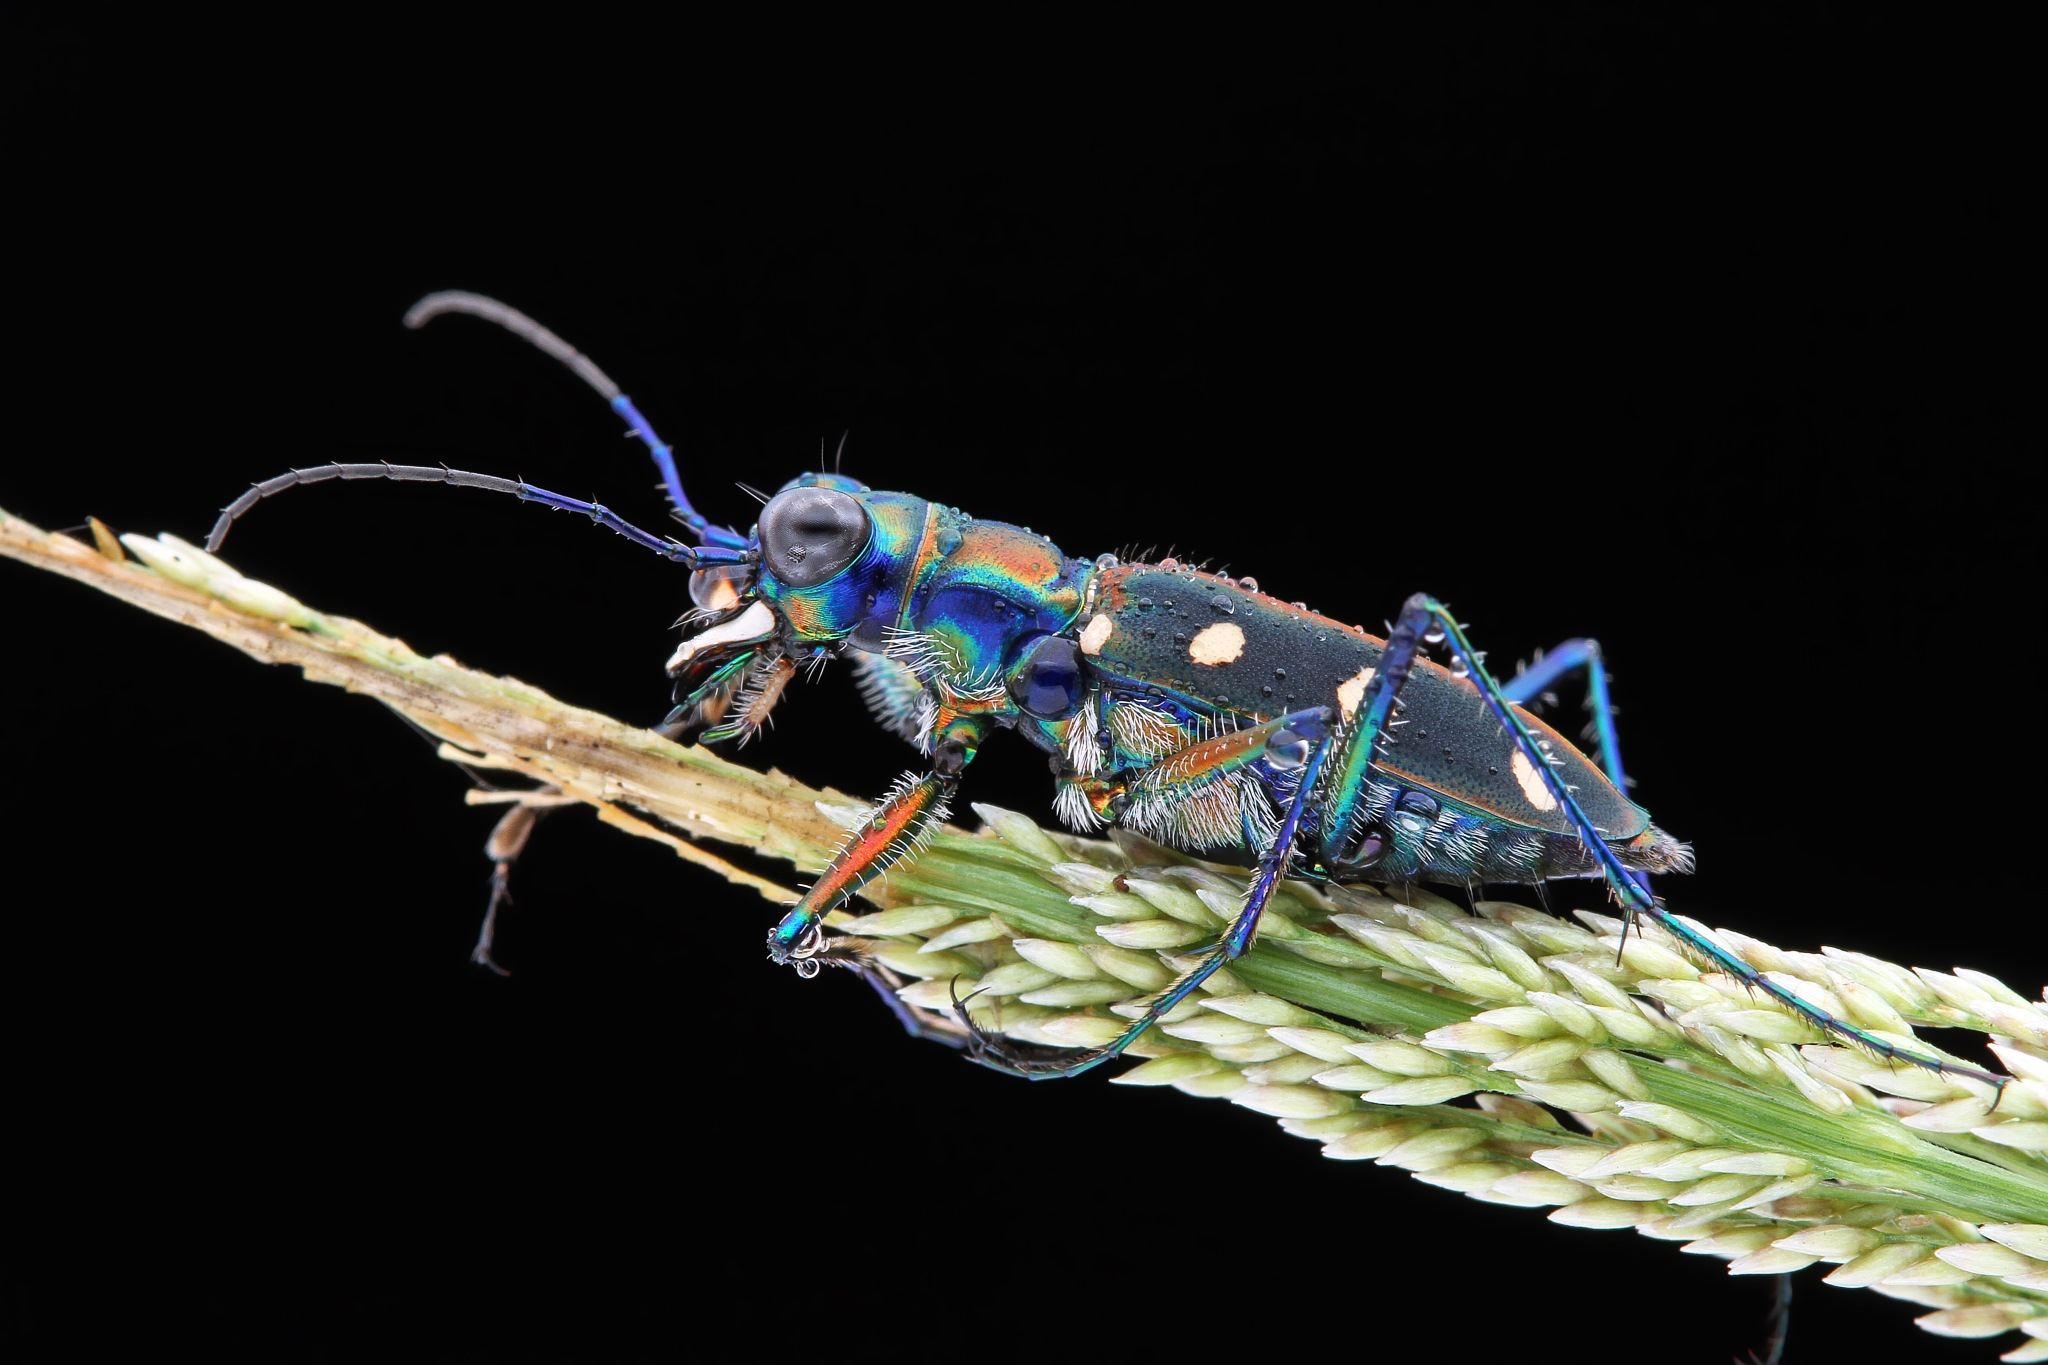 Tiger beetle by Hermanokin